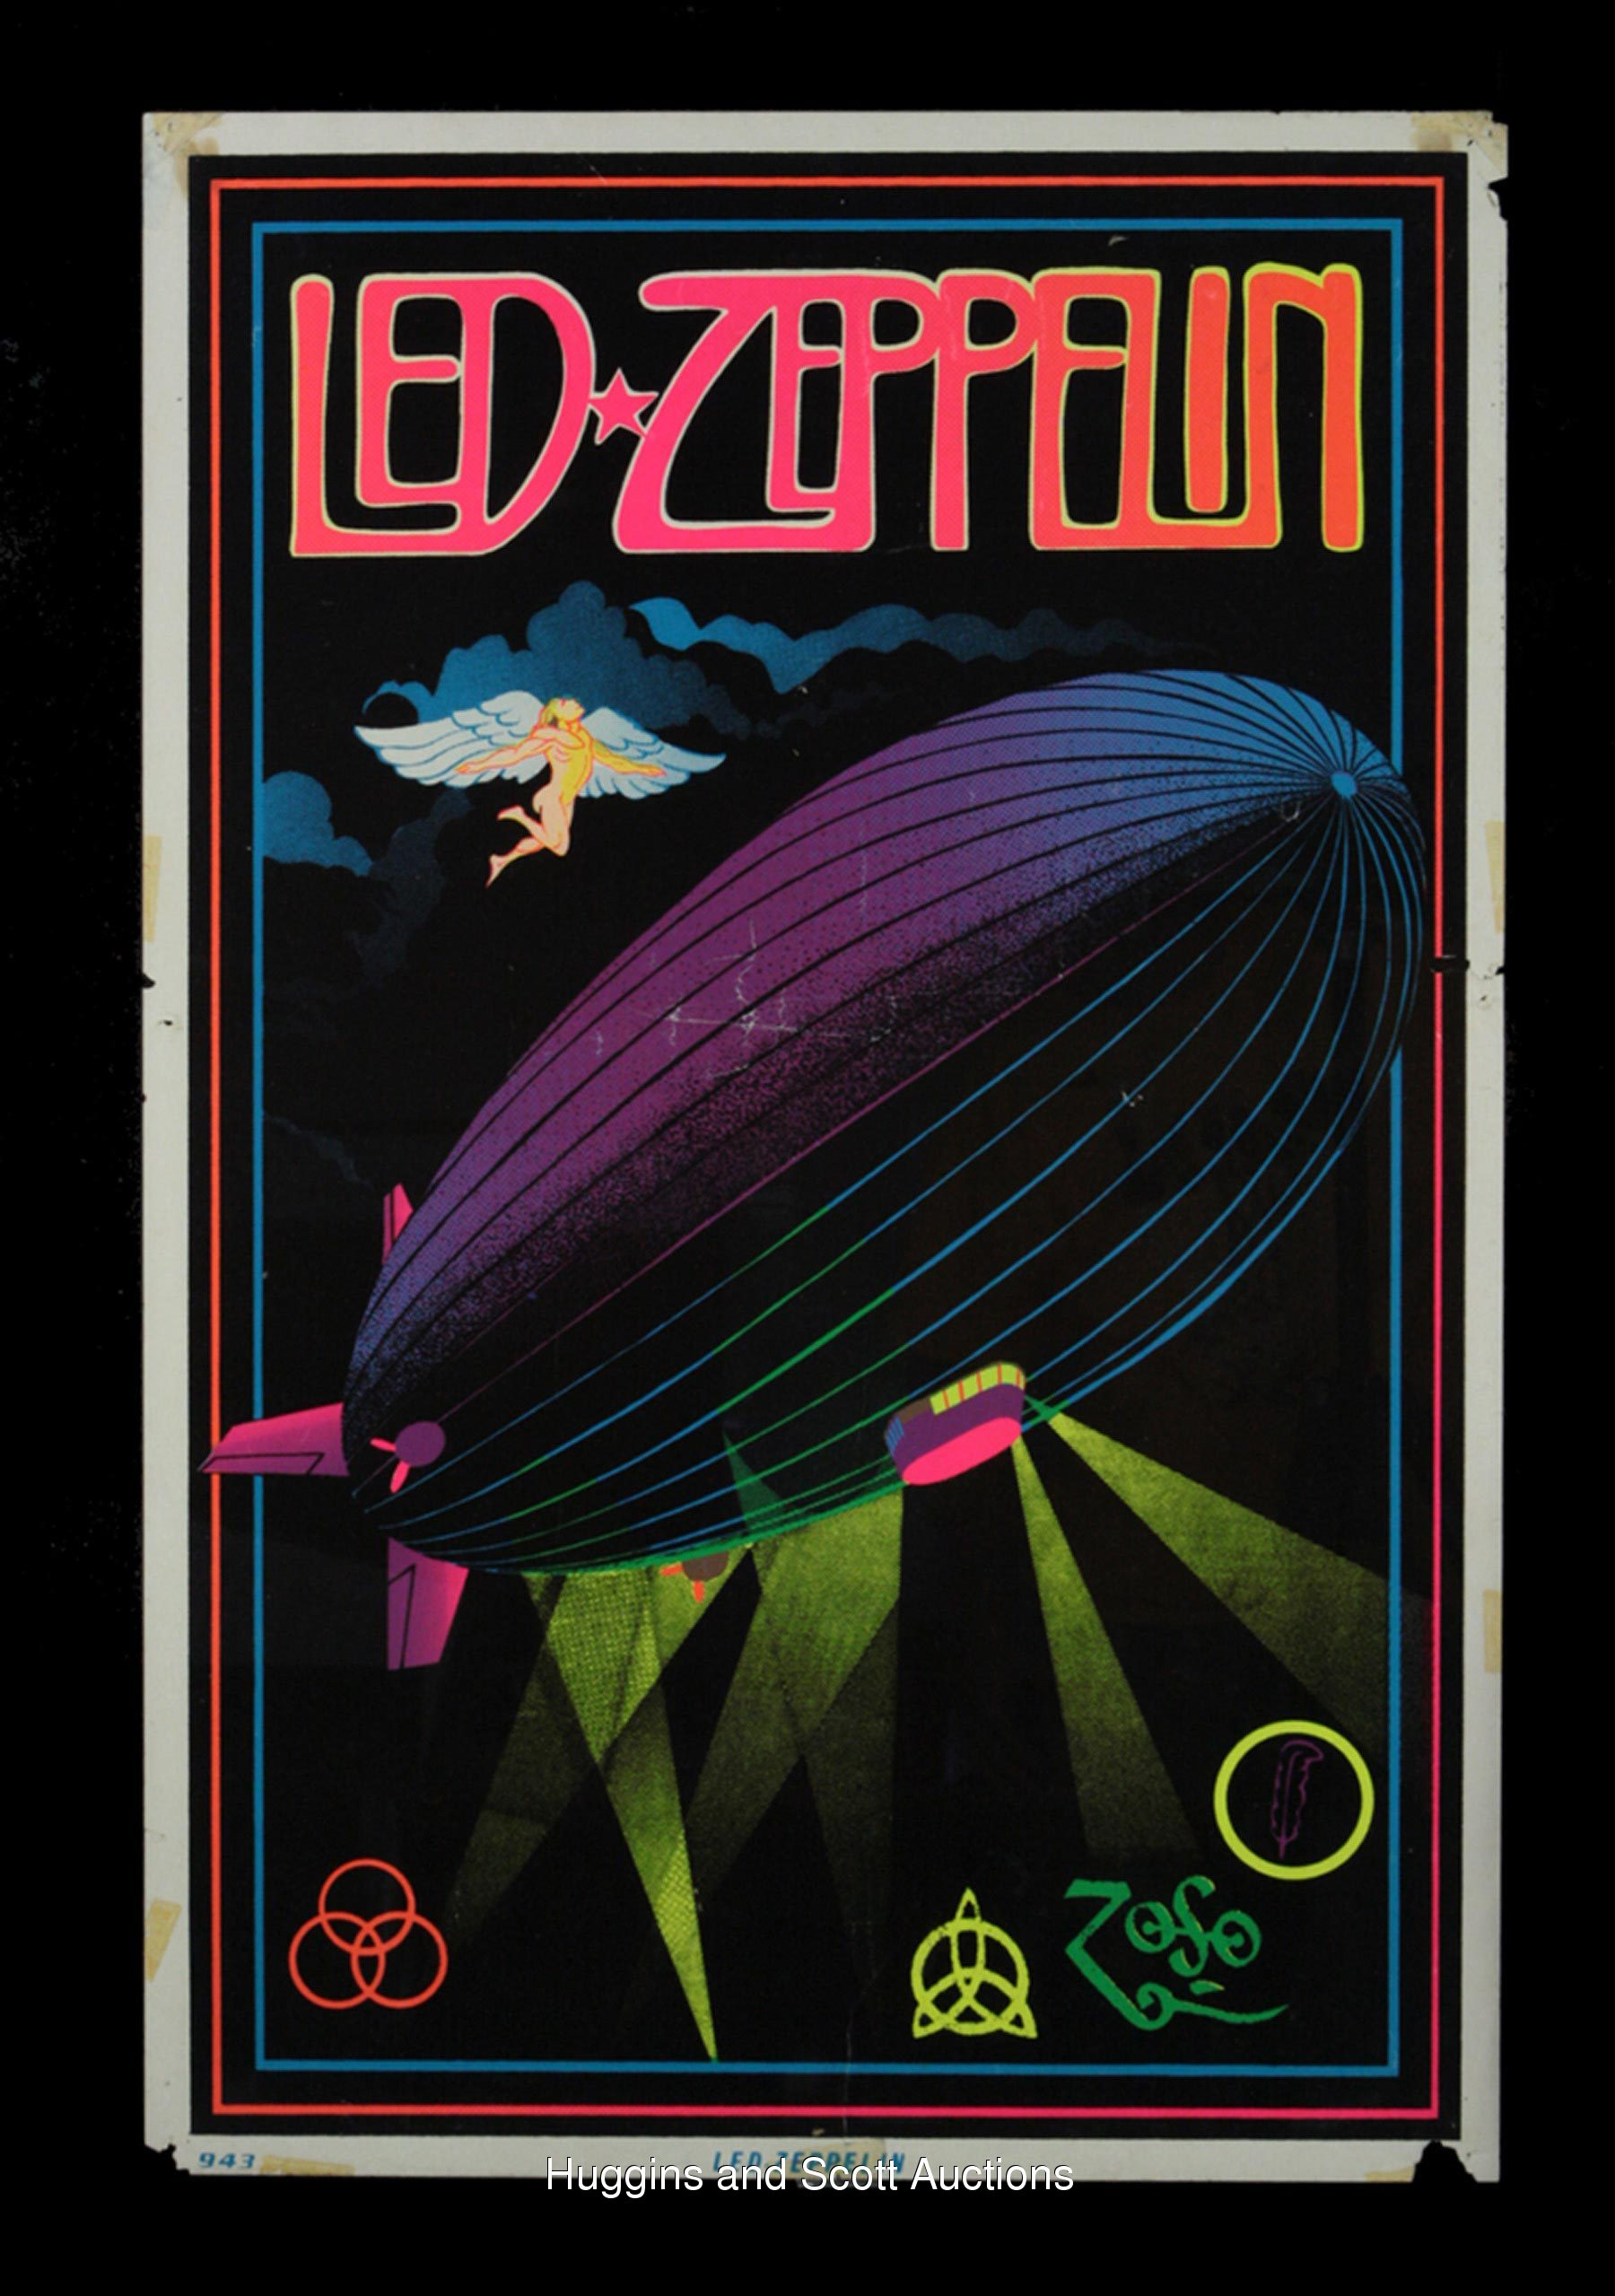 2 Early 1970s Led Zeppelin Original Black Light Posters